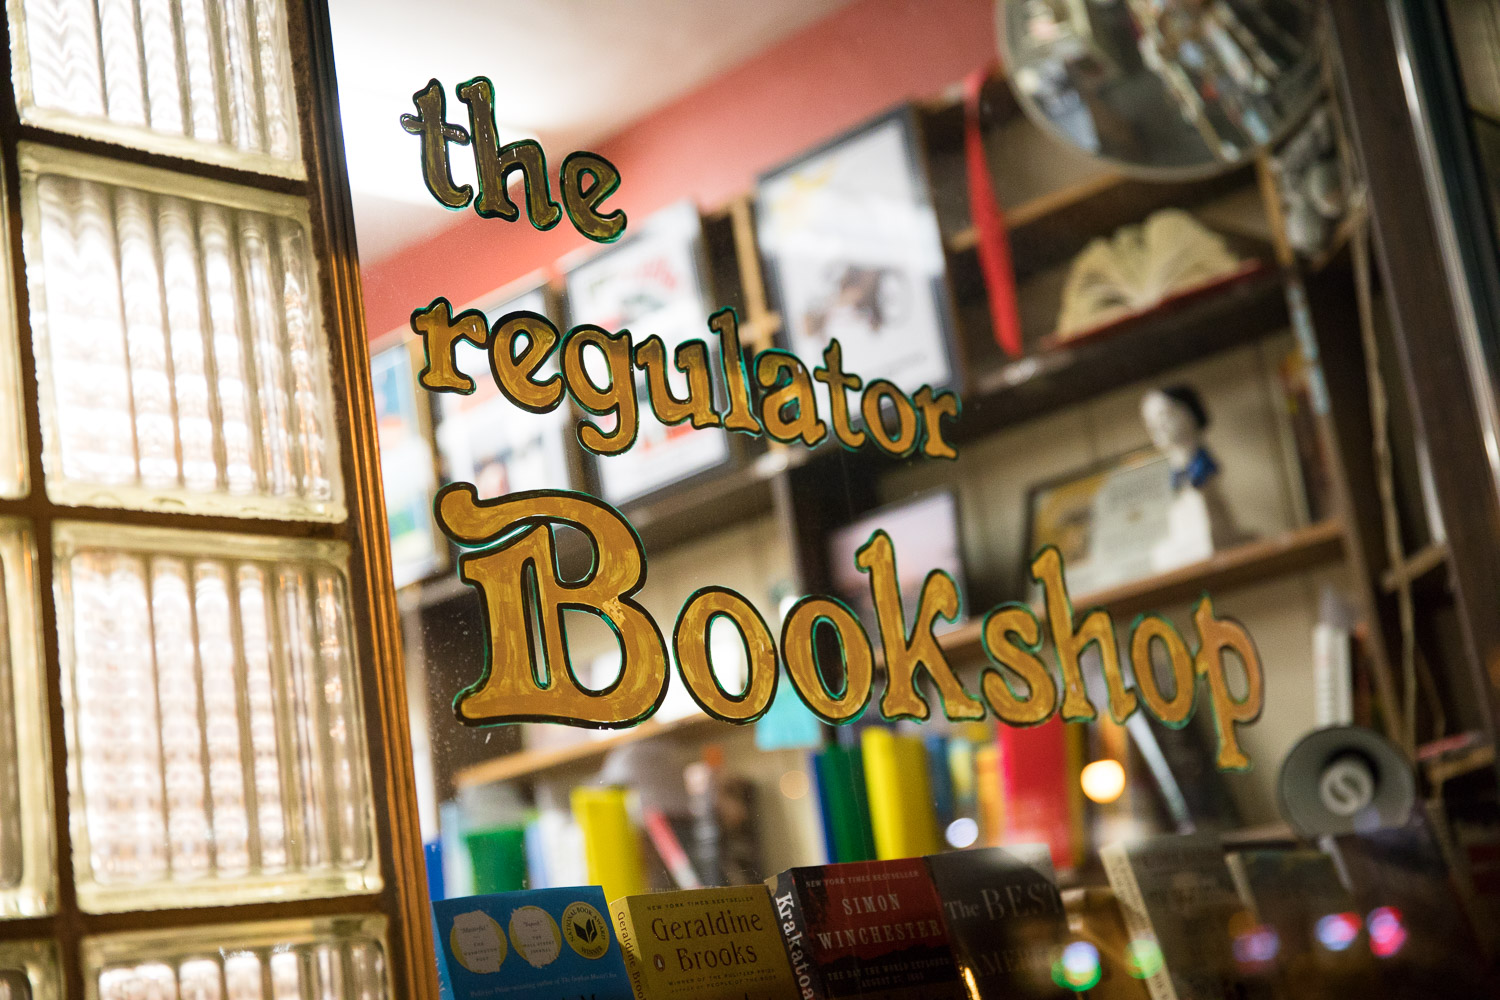 The Regulator Bookshop on Ninth Street, Durham